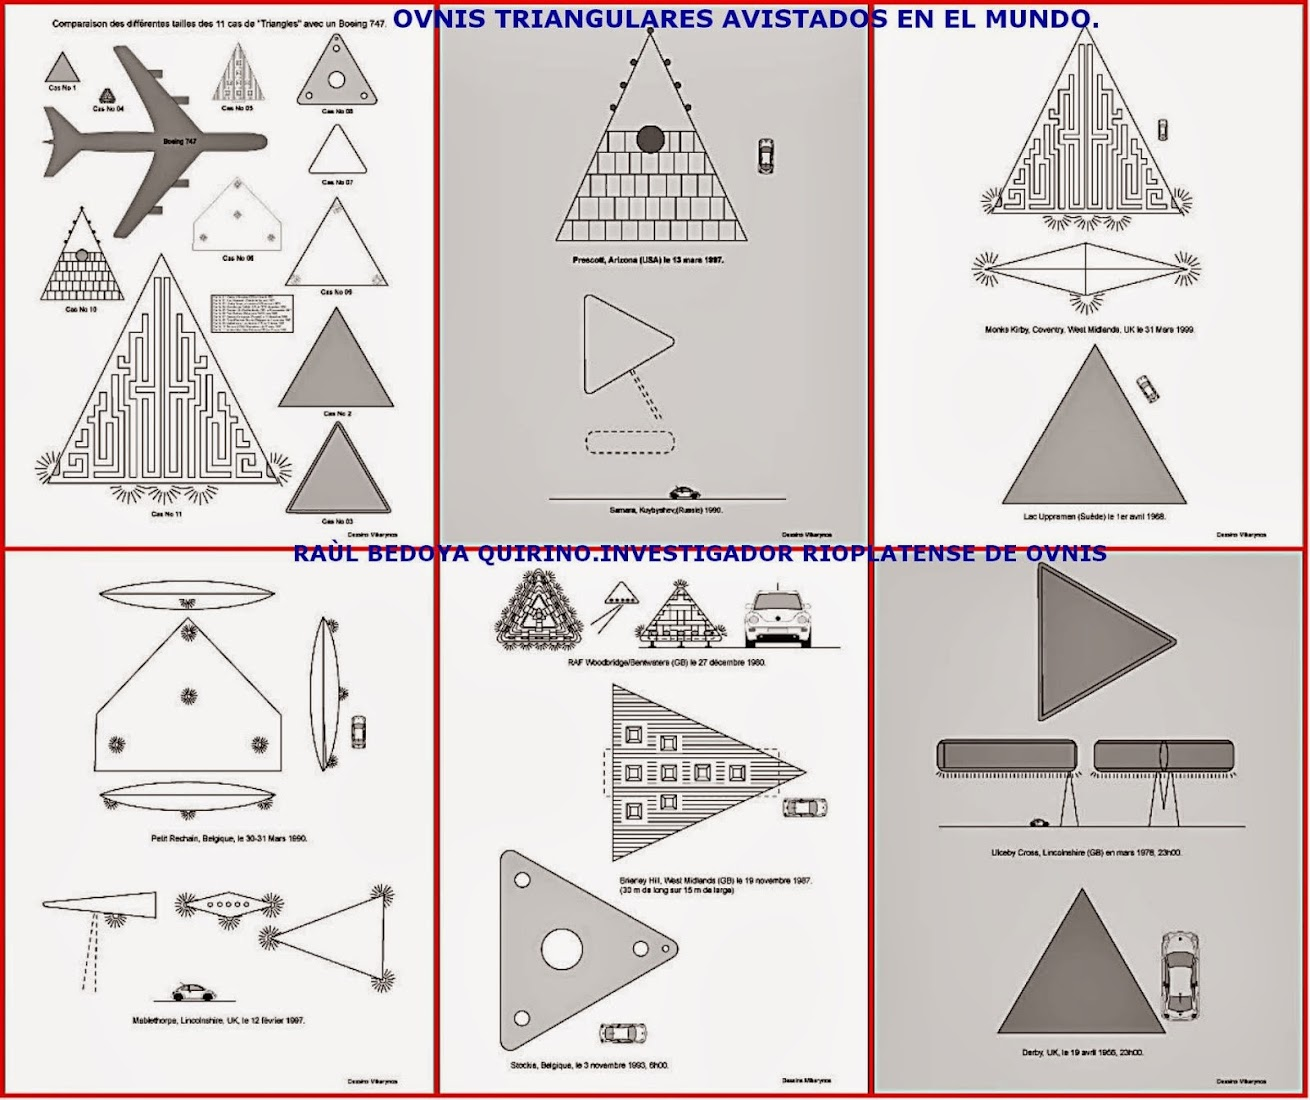 OVNIS.UFOS.TRIANGULARES...